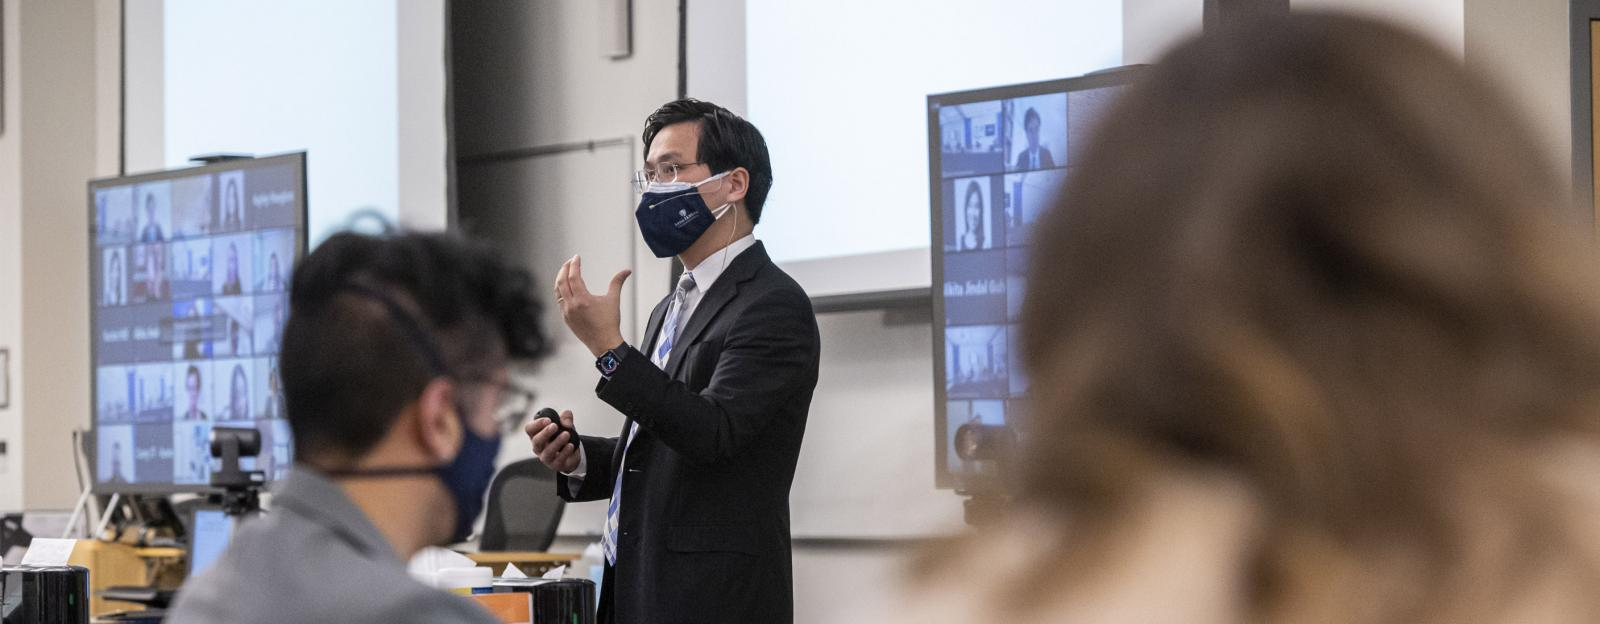 lecture in a hybrid classroom with the professor and students with masks